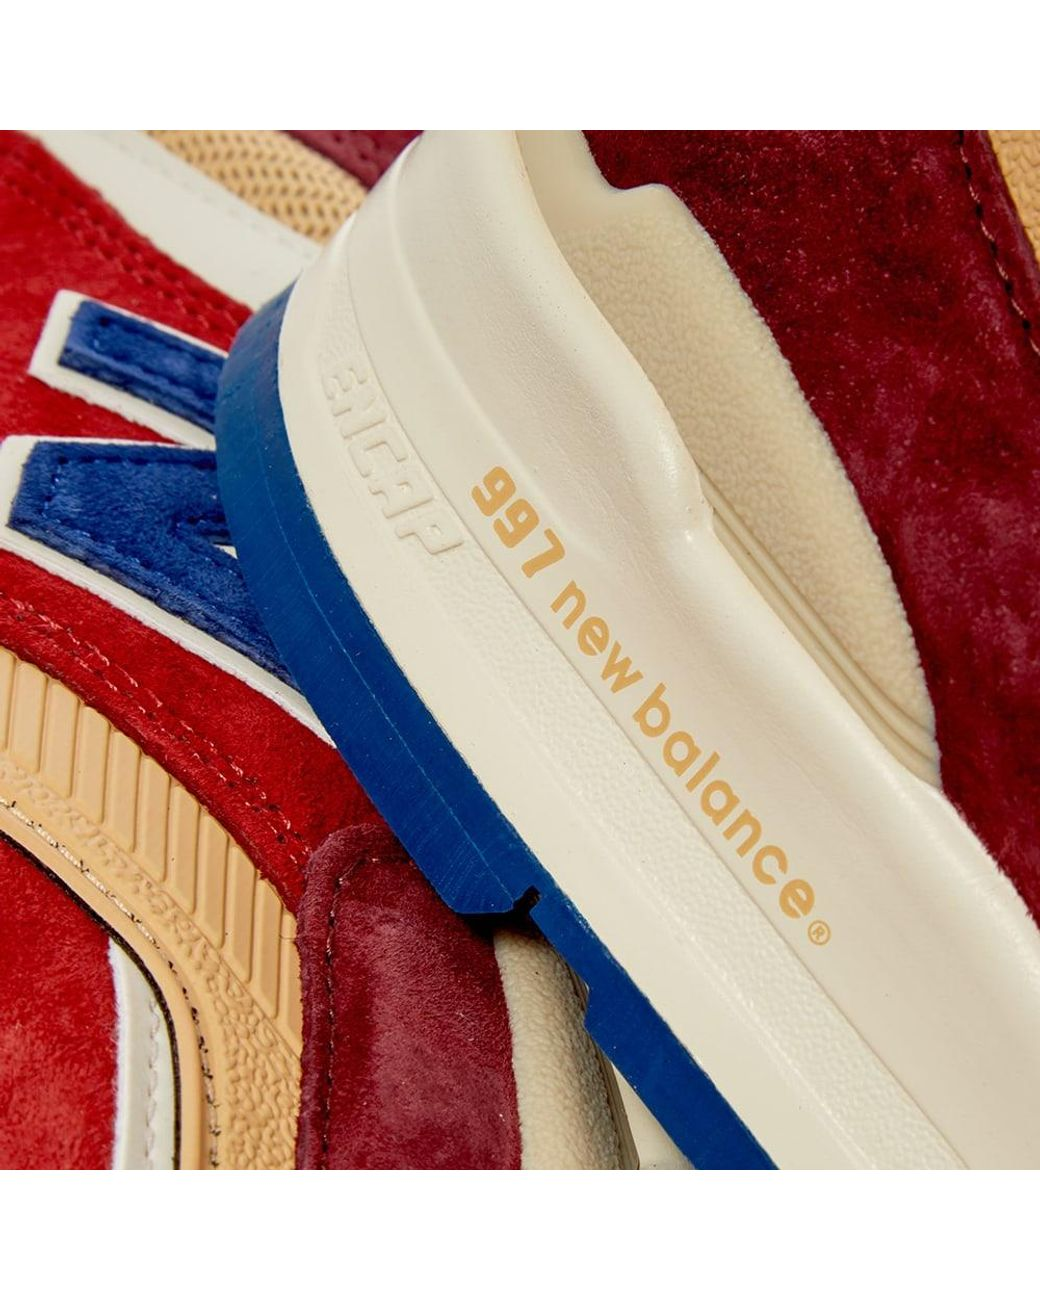 New Balance Suede End X M997end Made In Usa Persian Rug